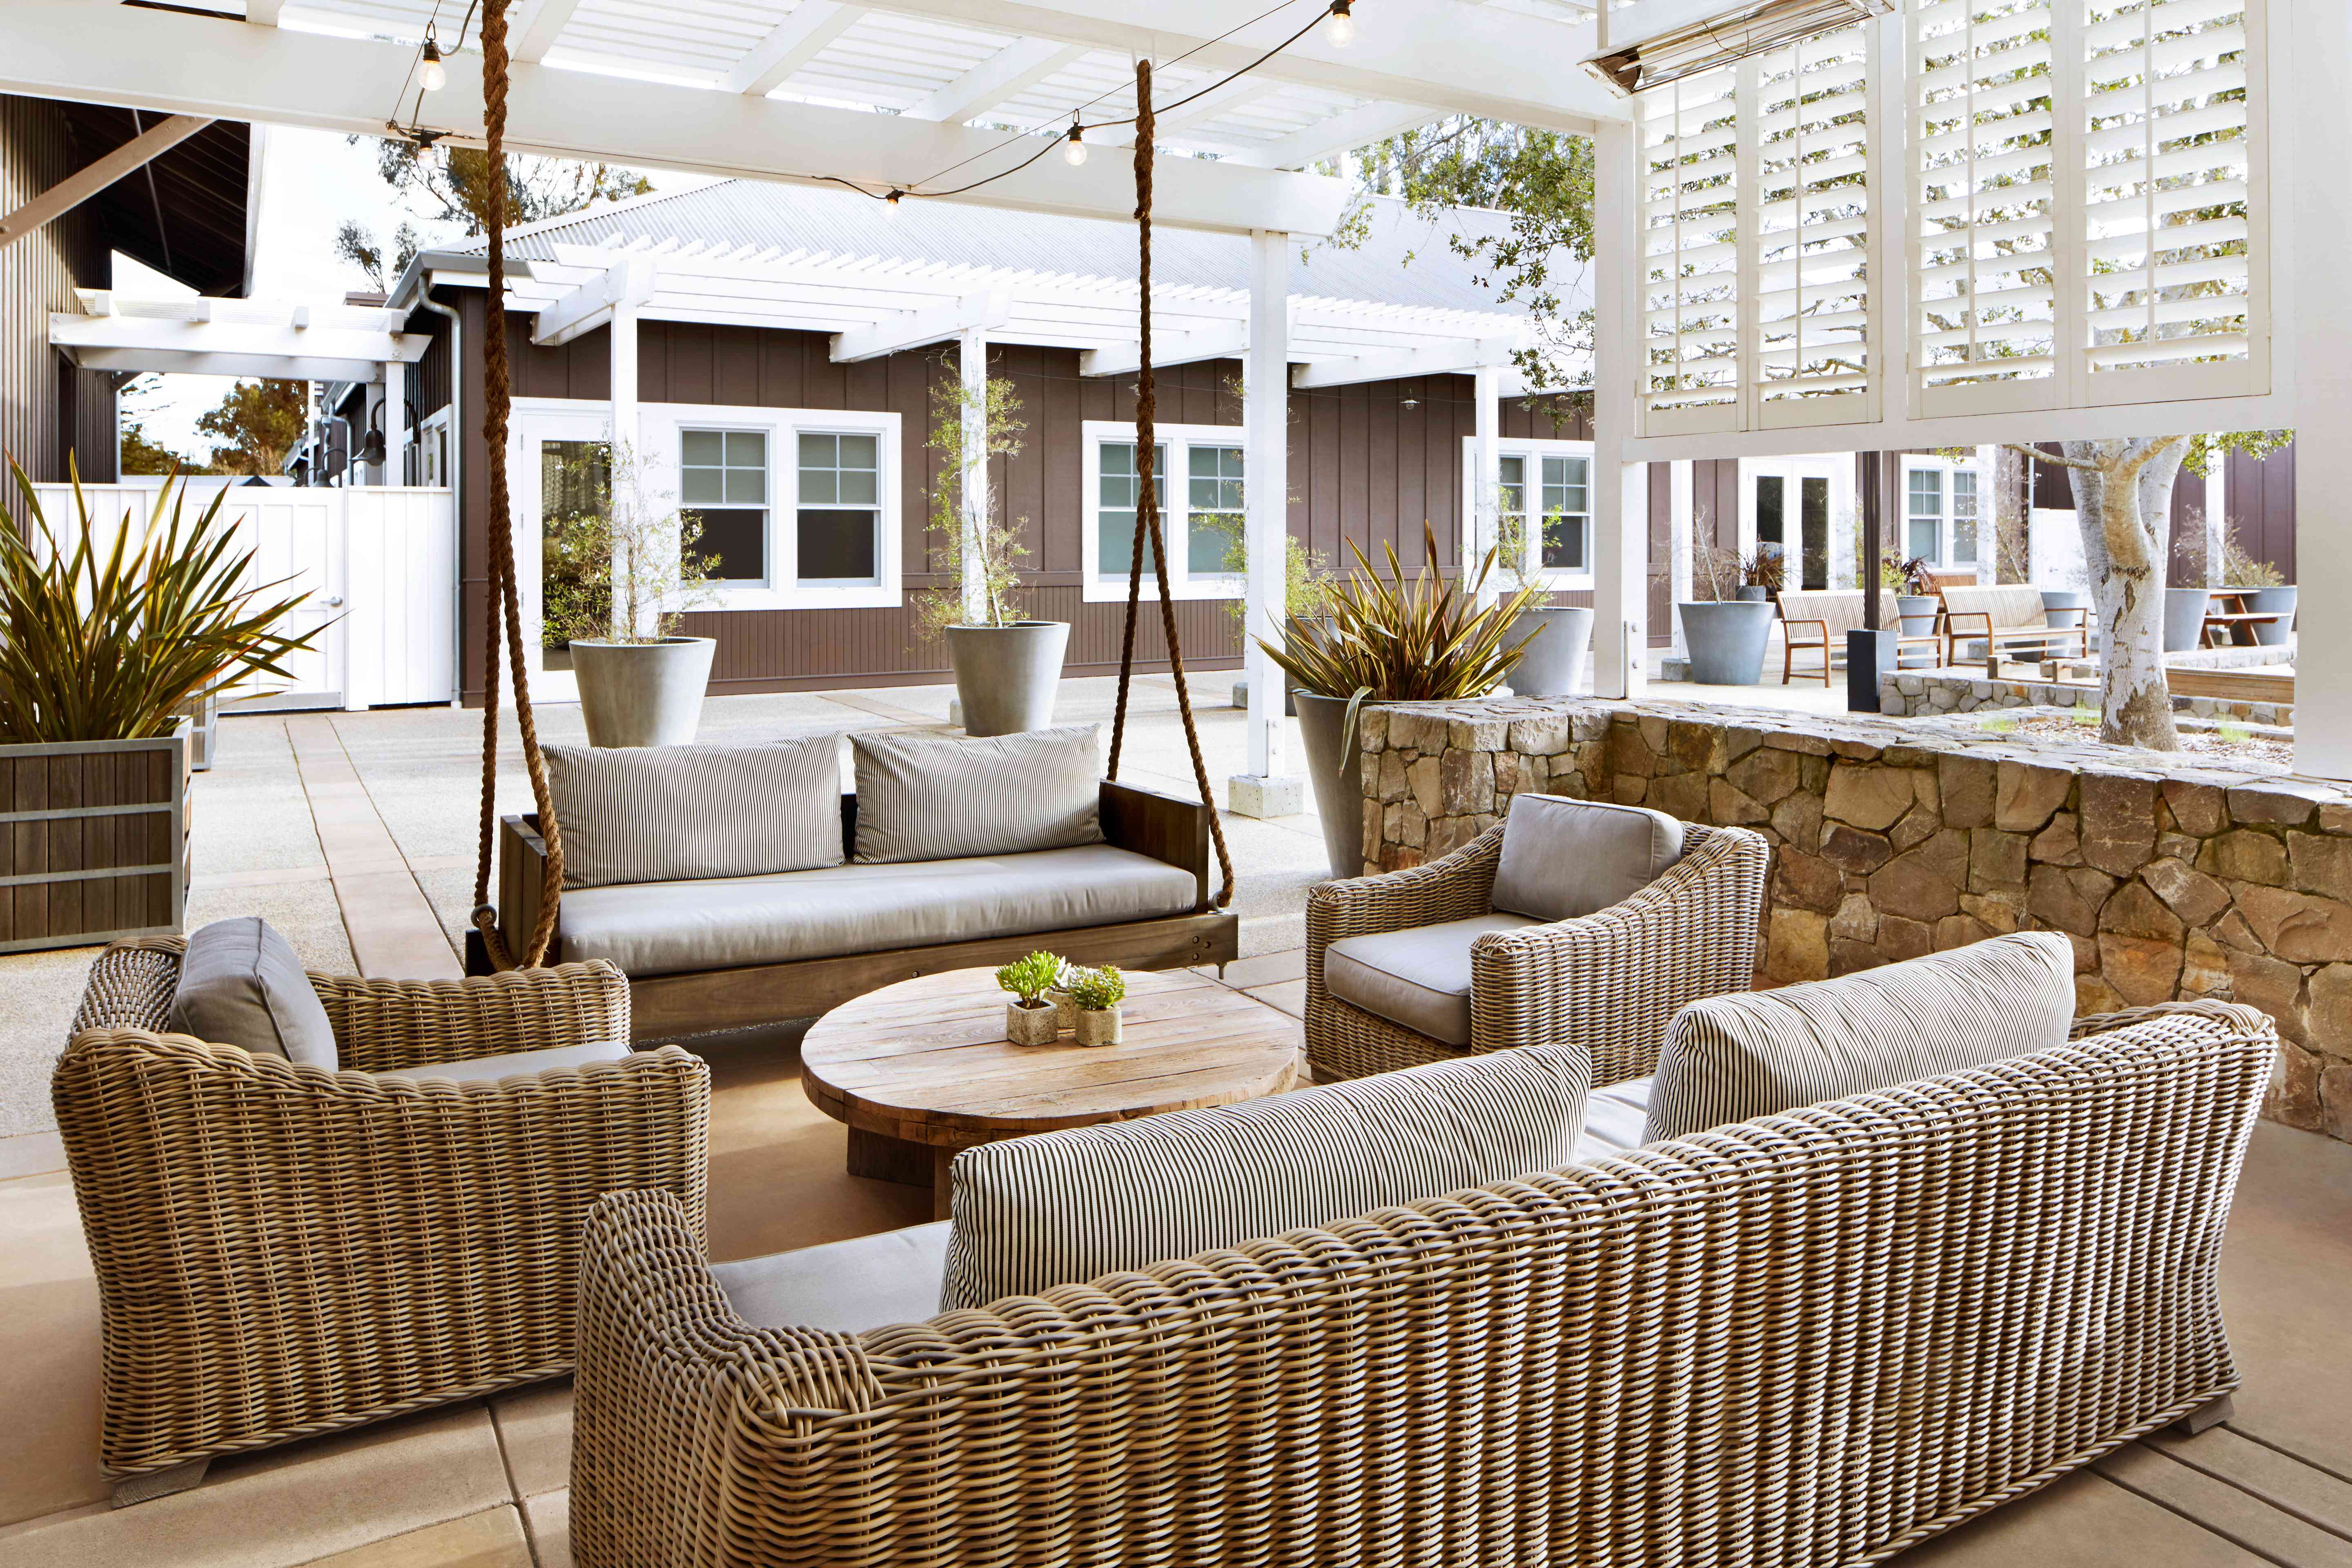 wicker and reclaimed wood furniture on a patio